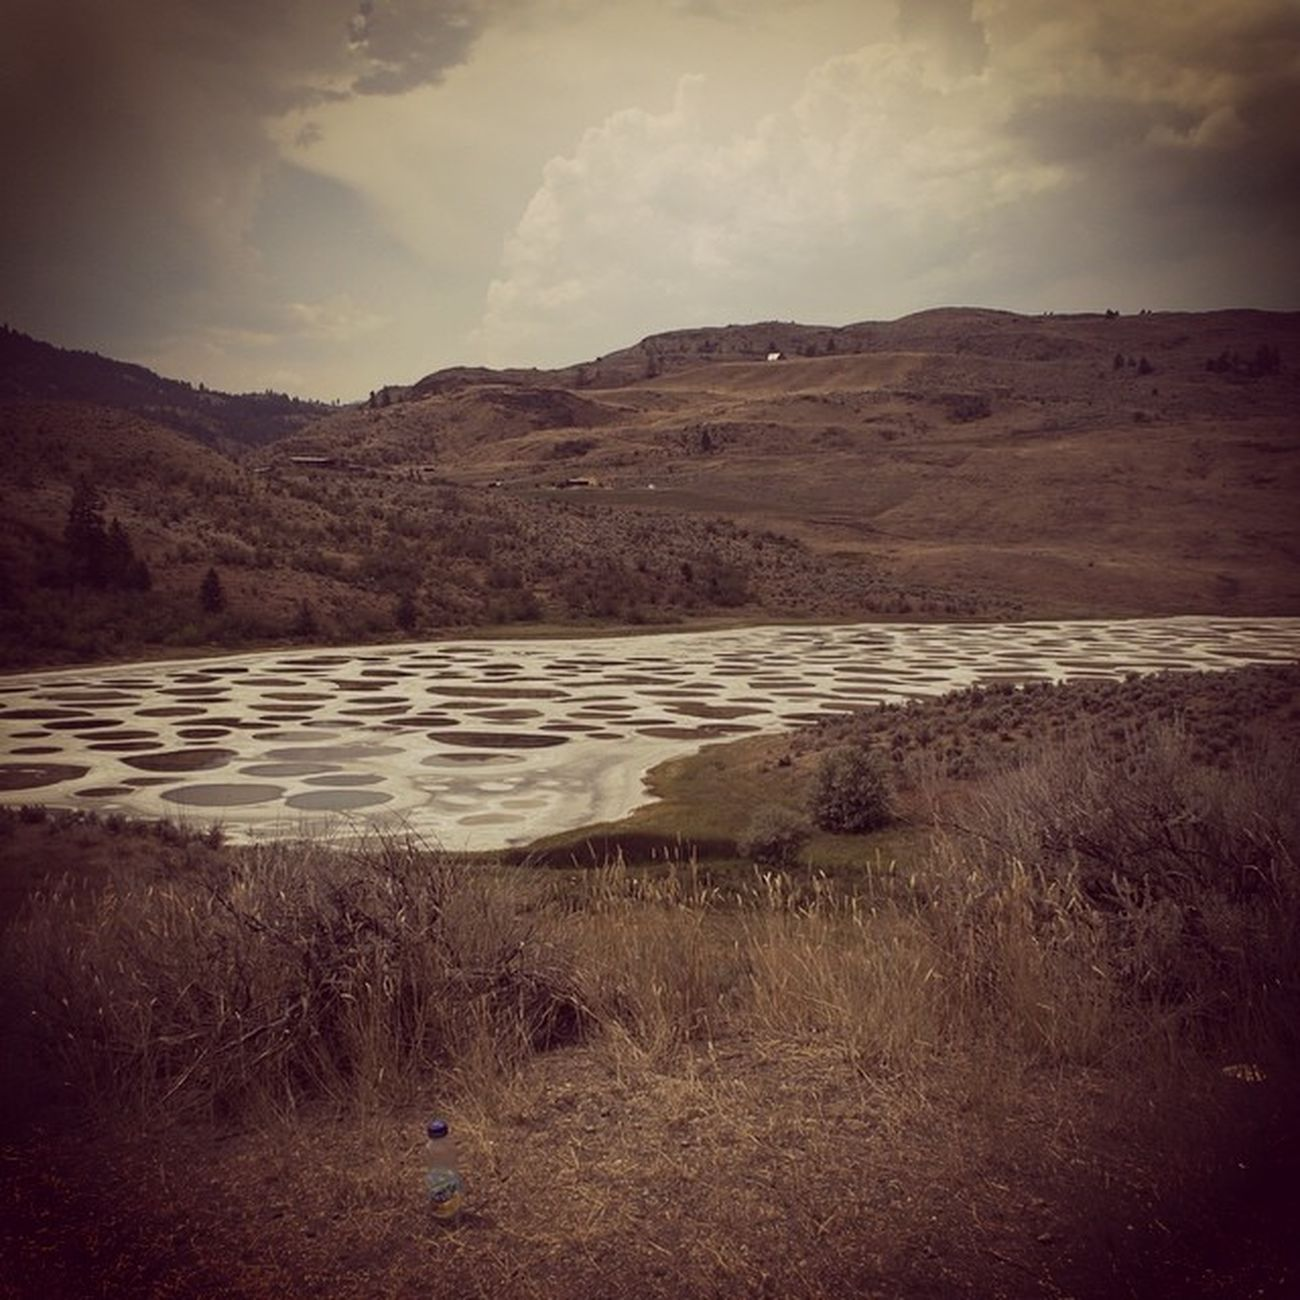 Osoyoos Spotted Lake FirstNation spiritual minerals beautifulbc okanagan valley Canada